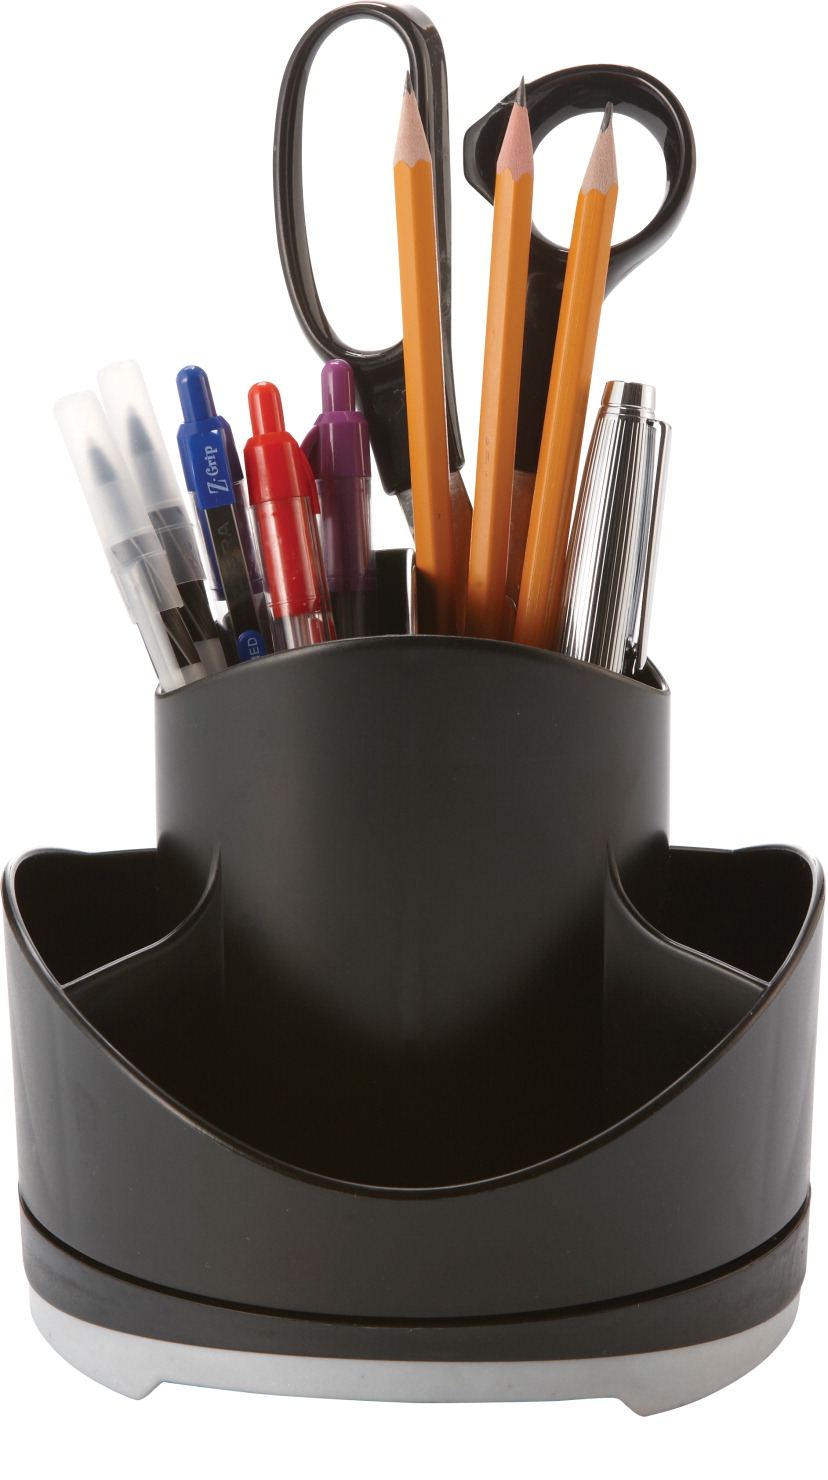 X Iceland Rotary Recycled Organizer Black Top With Gray Base